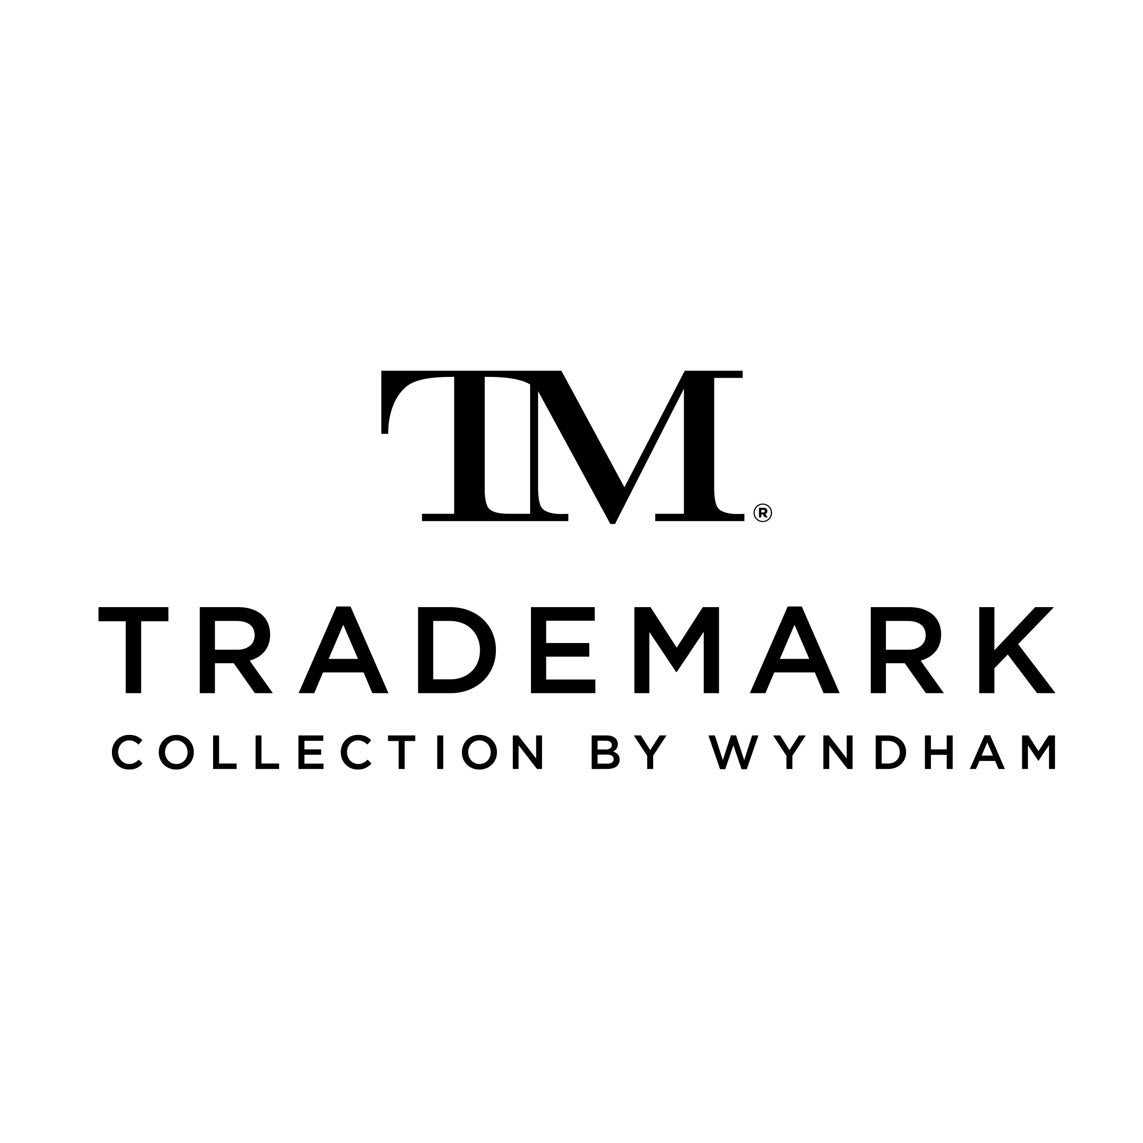 Trademark Collection by Wyndham